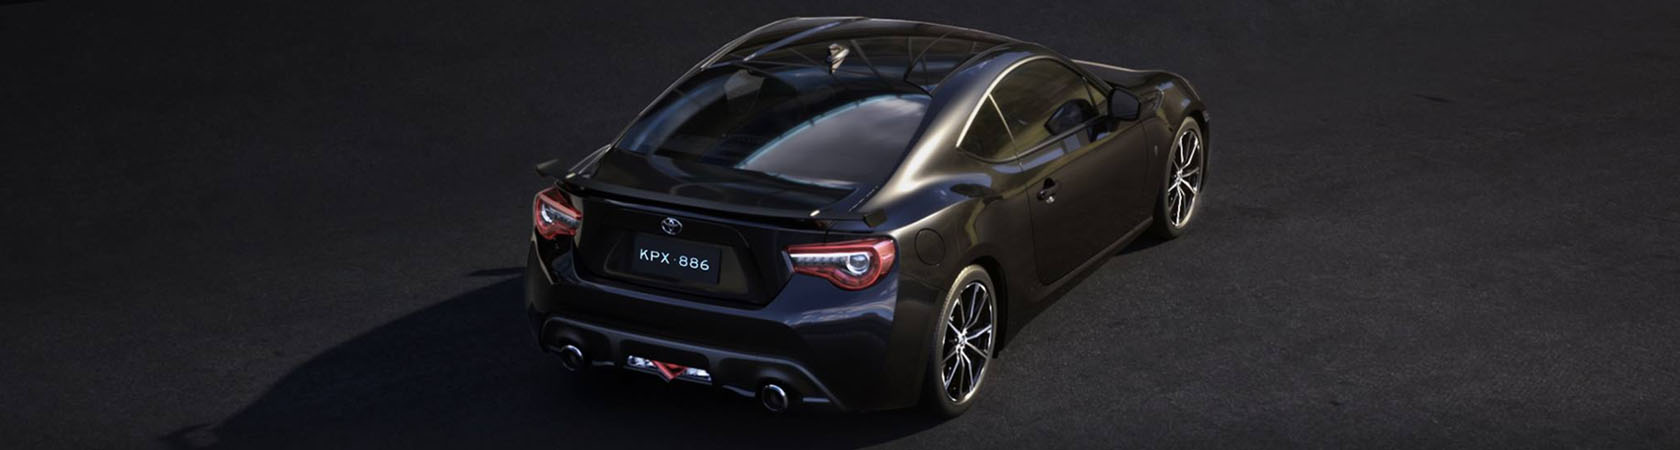 City Toyota 86